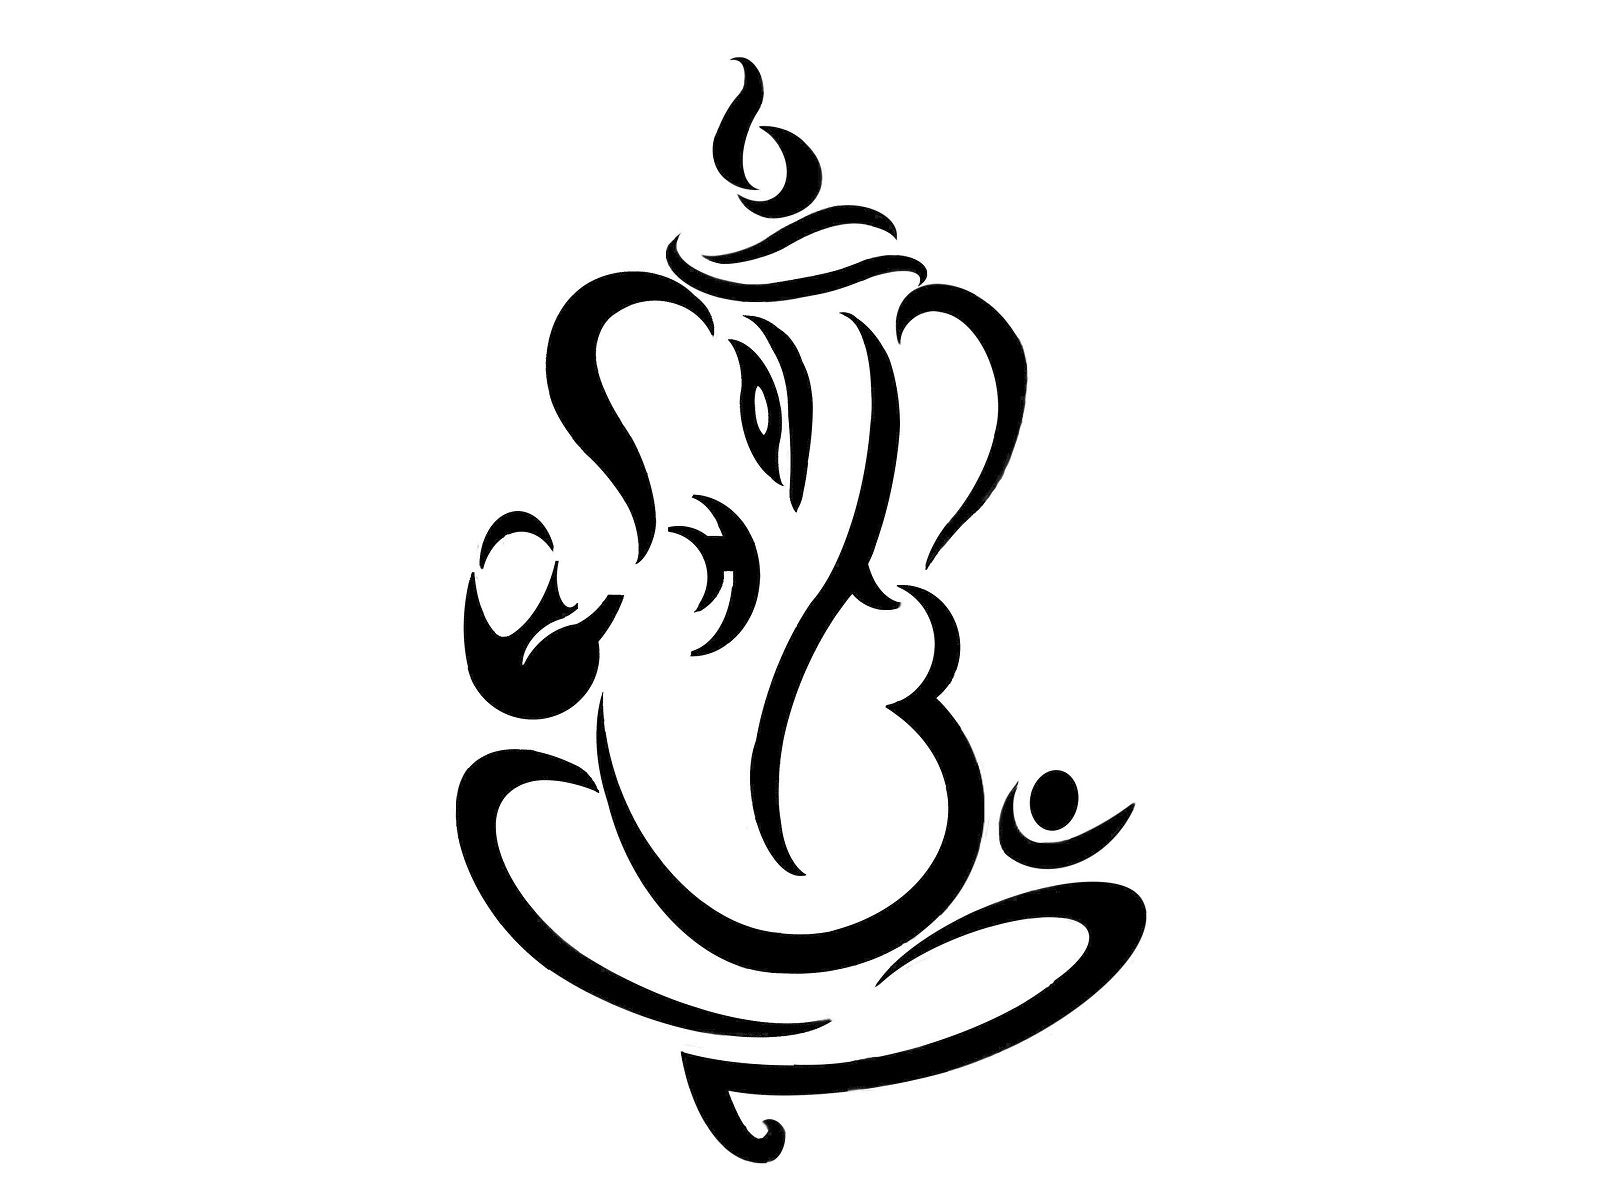 You may also like Ganesha Black And White High Resolution in.